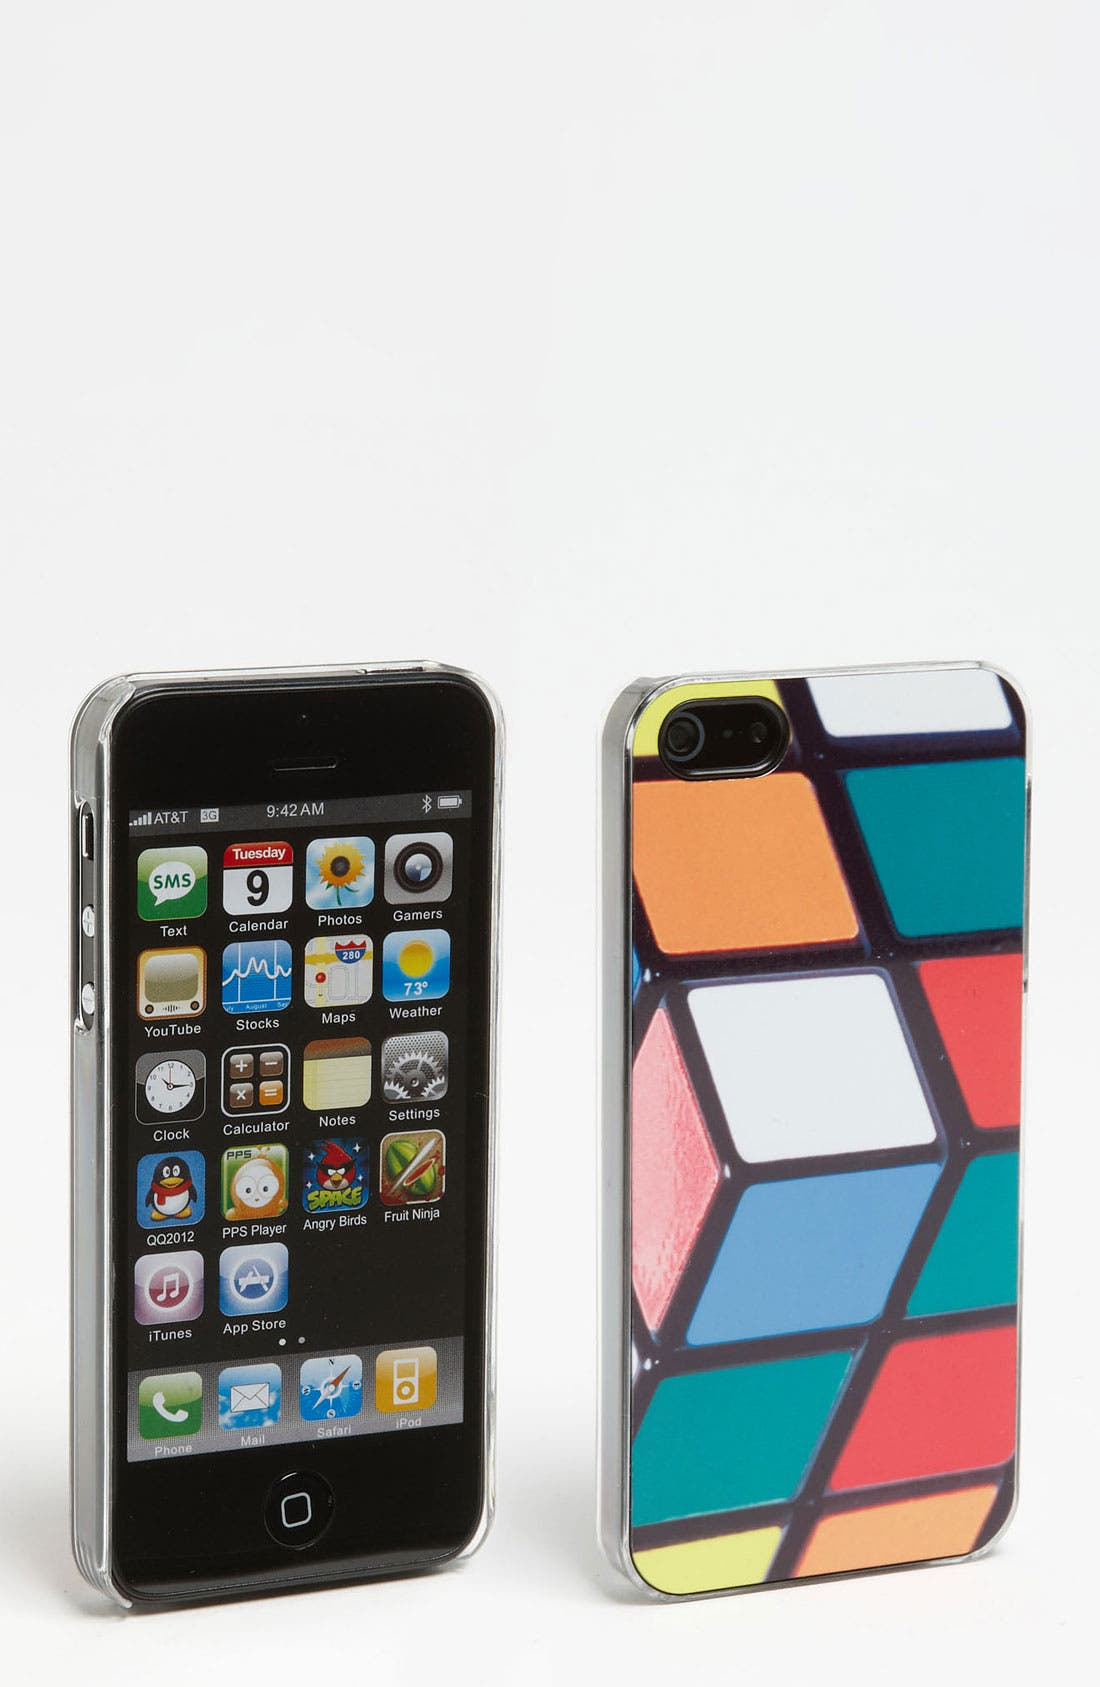 Main Image - ZERO GRAVITY iPhone 5 Case